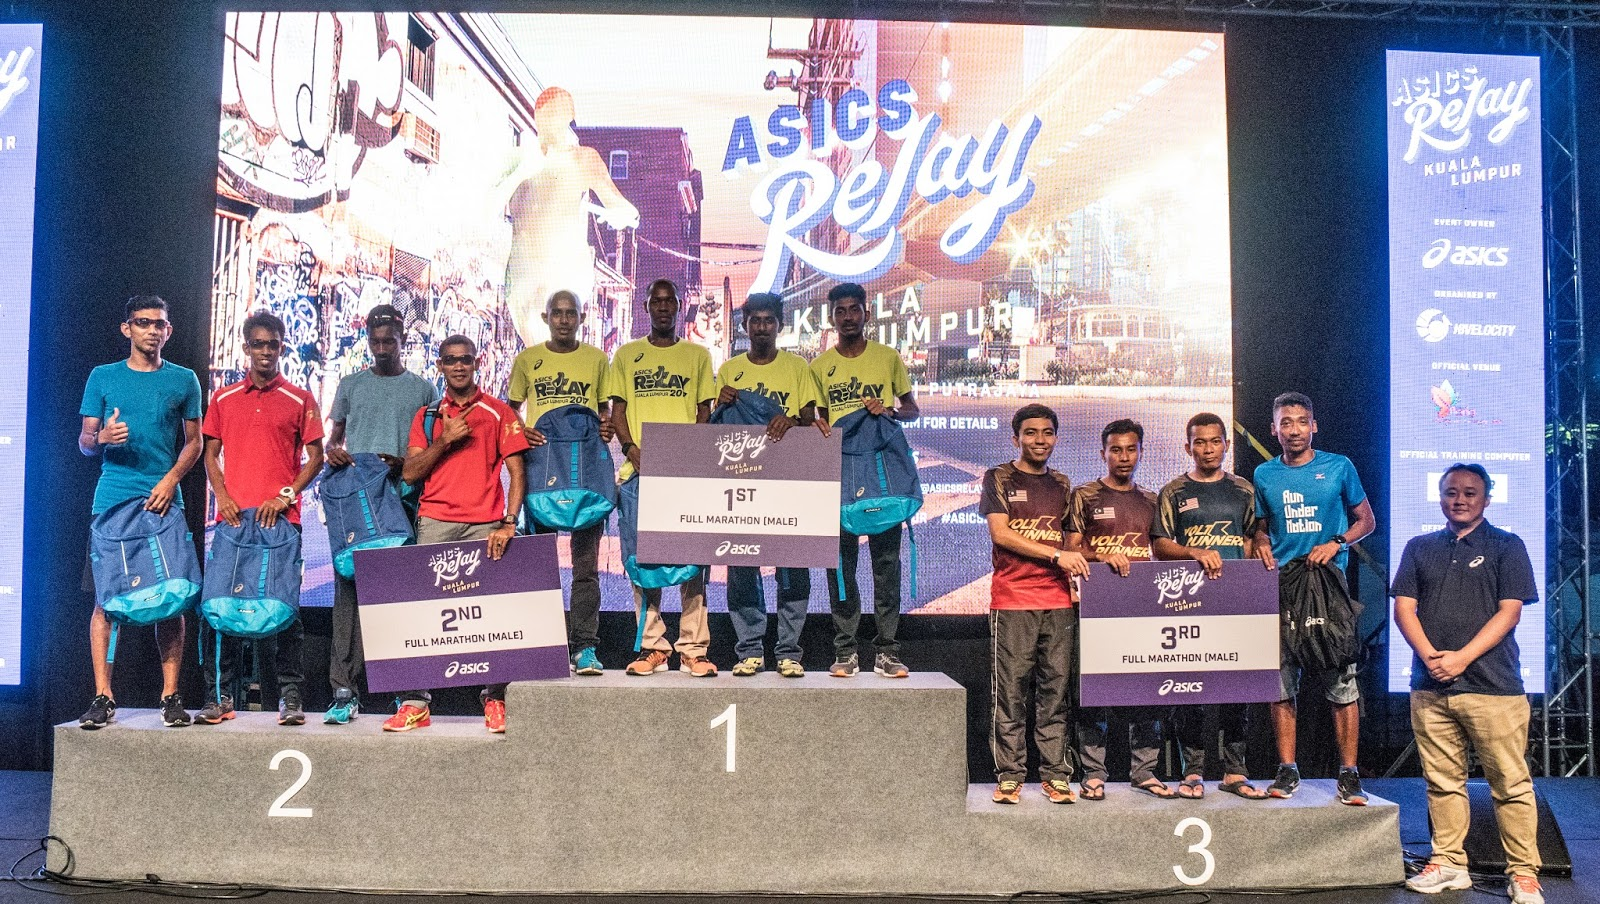 ce3dd94a33 Asics Relay KL 2017: Over 2,200 runners take part in ASICS Relay ...